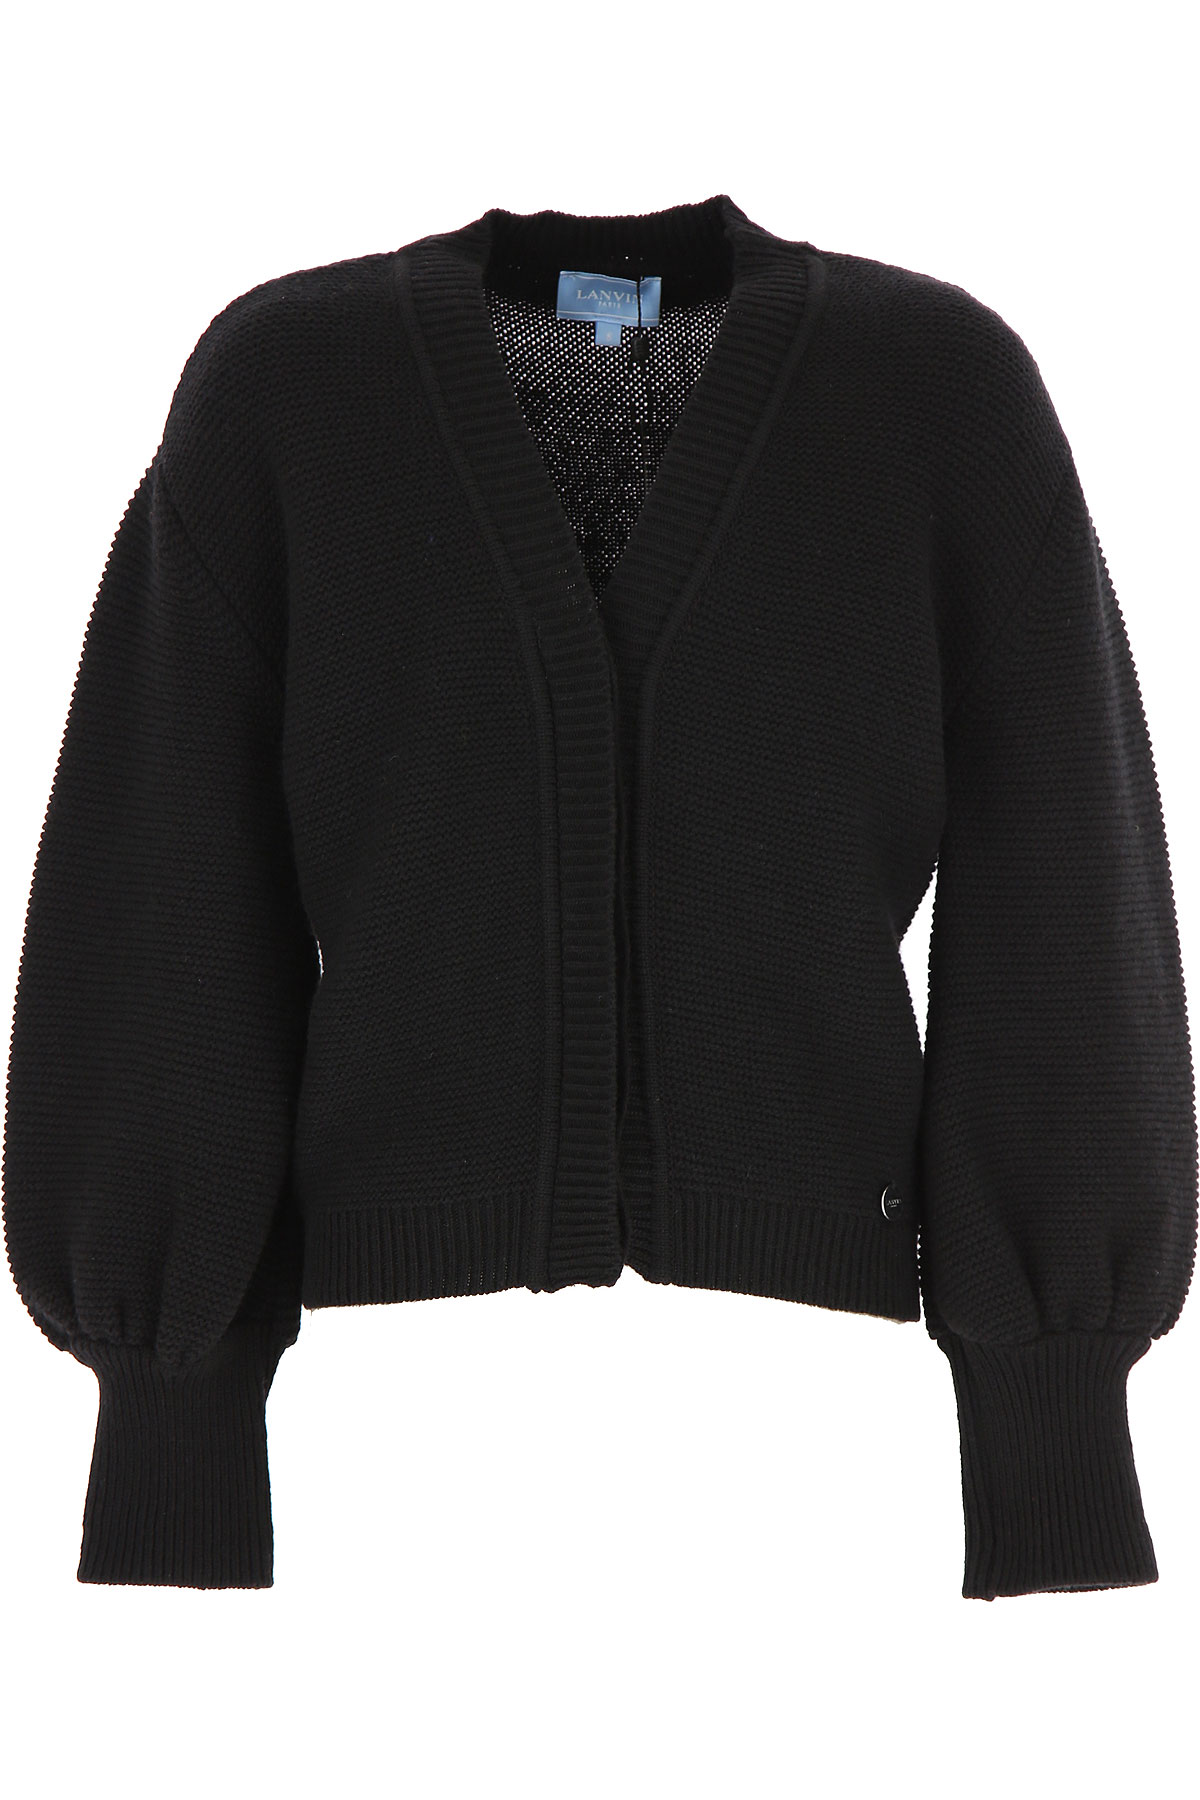 Lanvin Kids Sweaters for Girls On Sale, Black, Virgin wool, 2019, 10Y 12Y 14Y 2Y 4Y 6Y 8Y